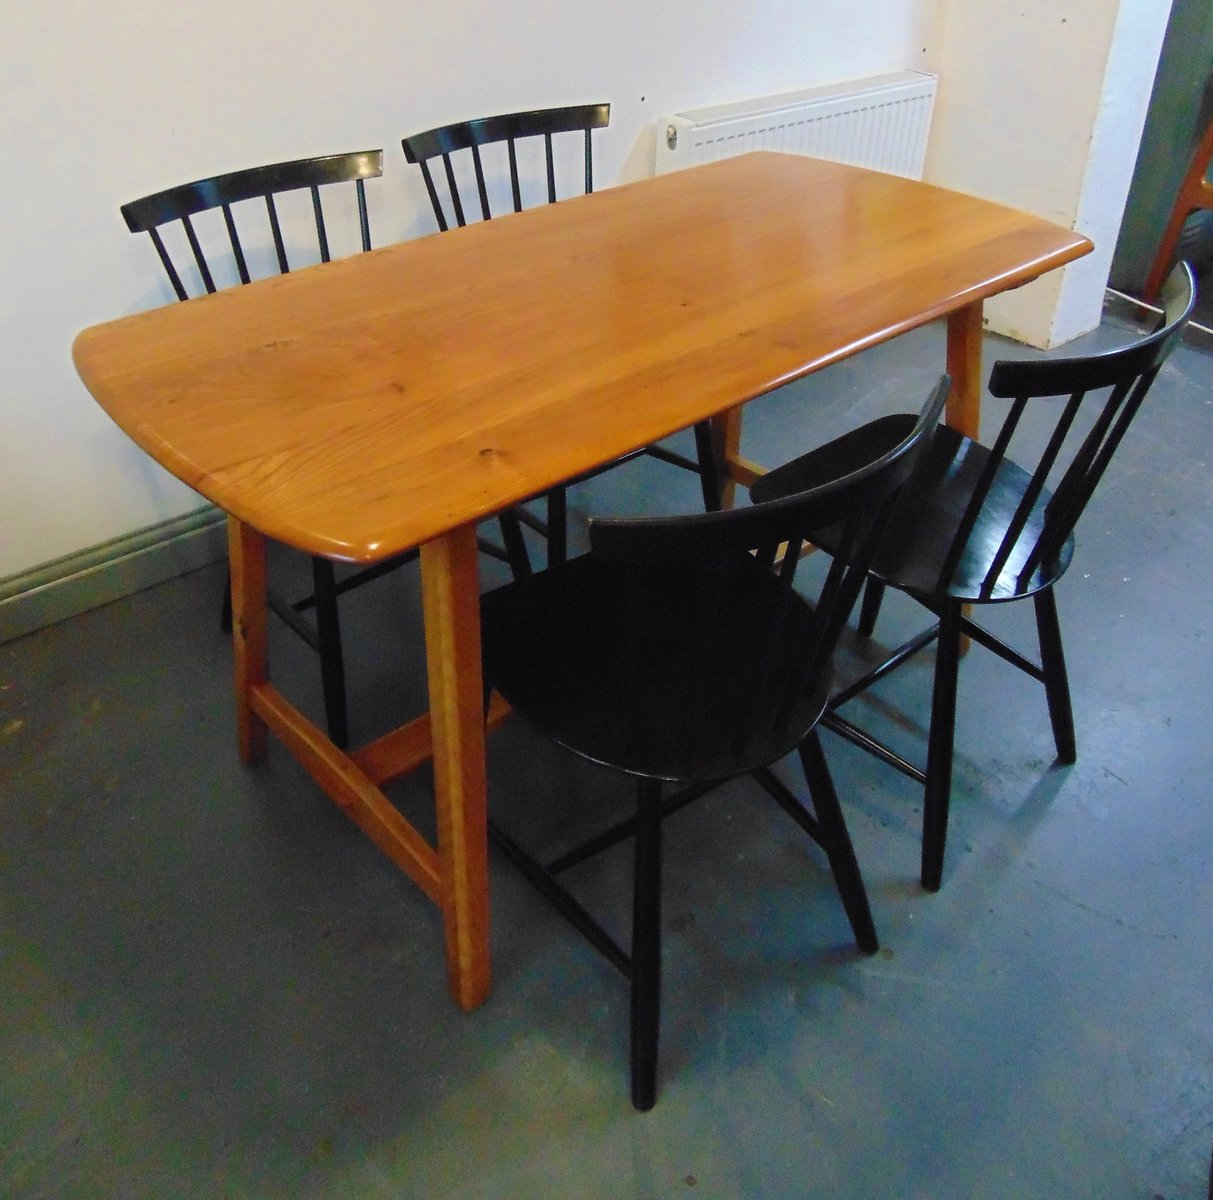 elm trestle dining table from ercol1950s elm trestle dining table from ercol1950s for sale at pamono  rh   pamono com